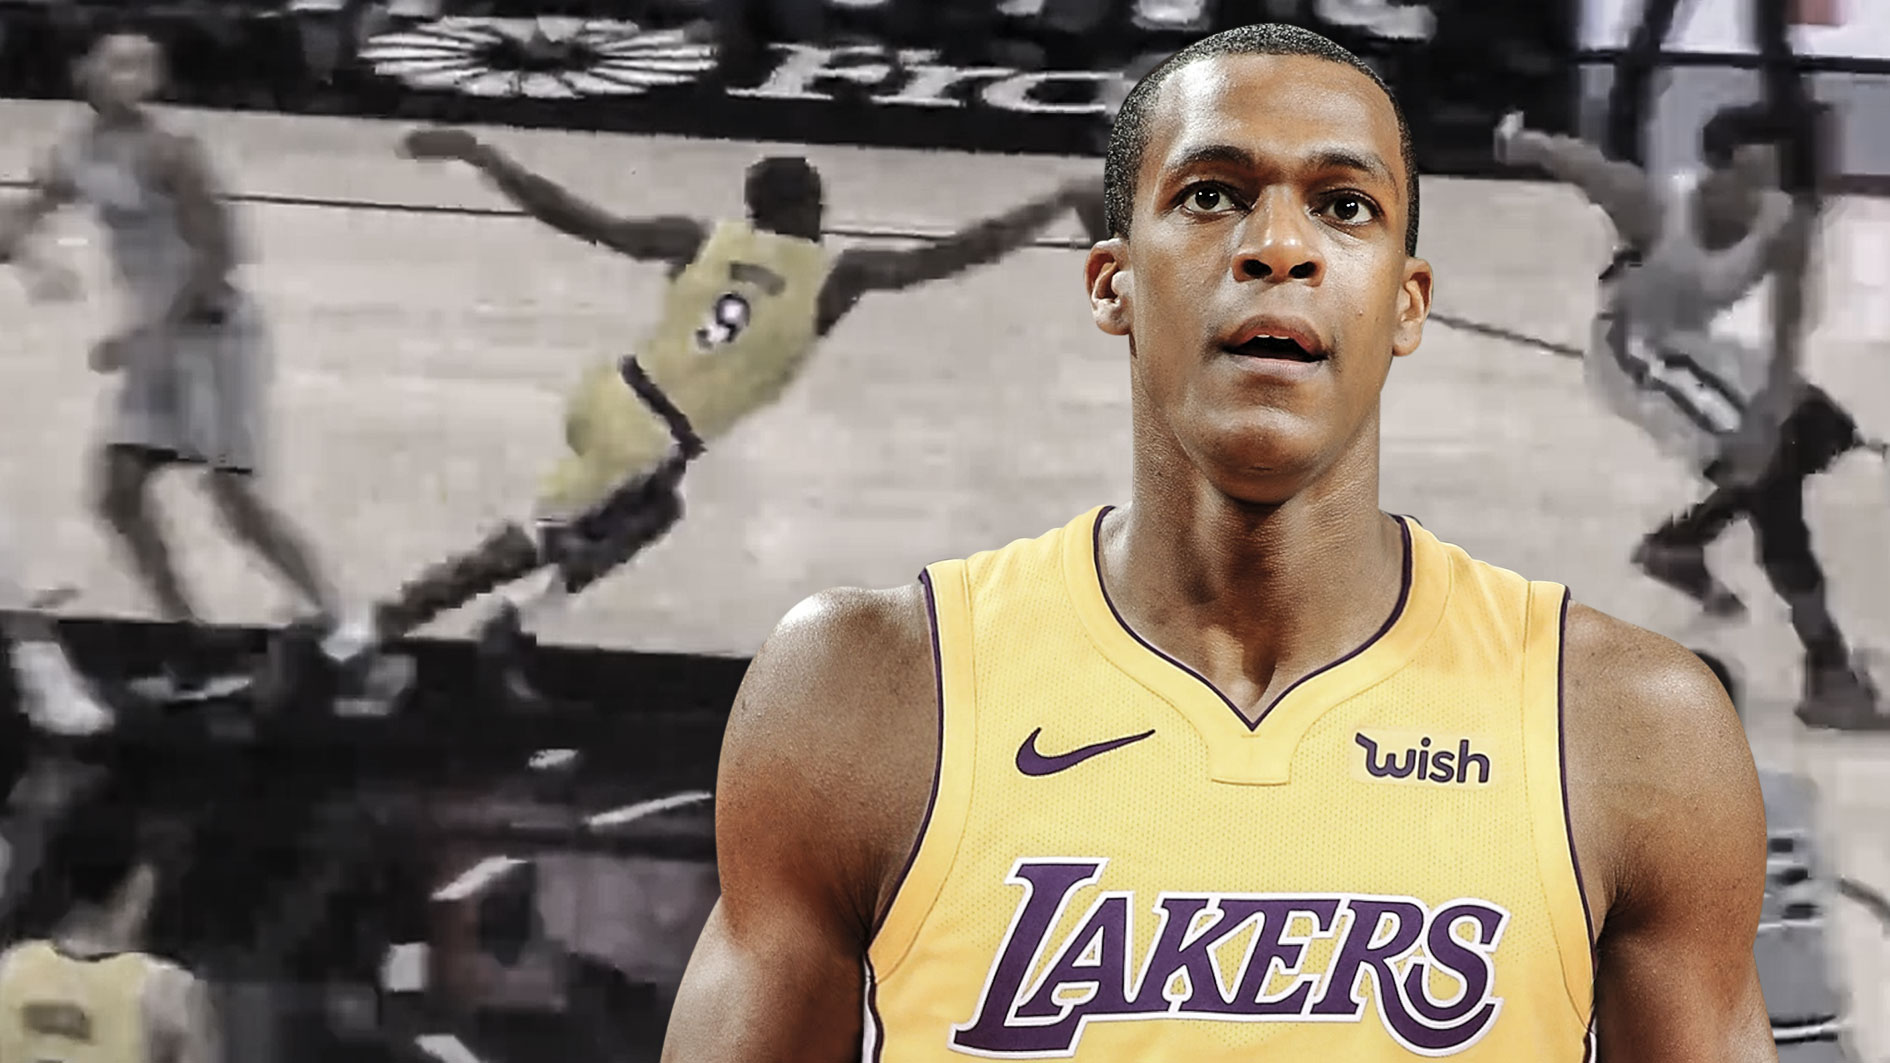 Rajon-Rondo-shocks-everyone-by-passing-on-open-shot-in-dying-seconds-vs.-Spurs